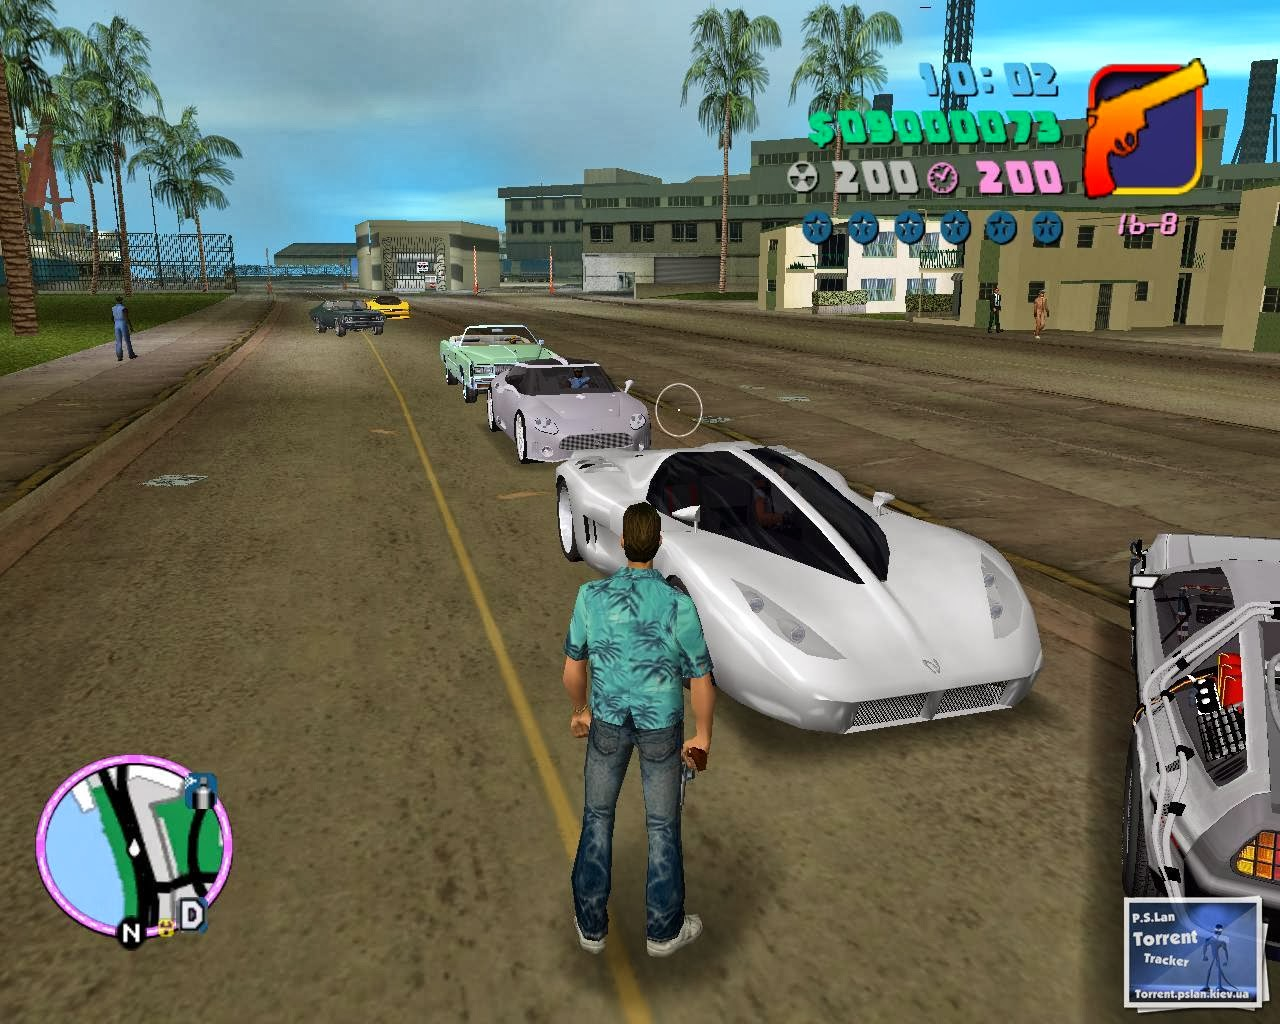 Gta vice city back to the future hill valley game free download full